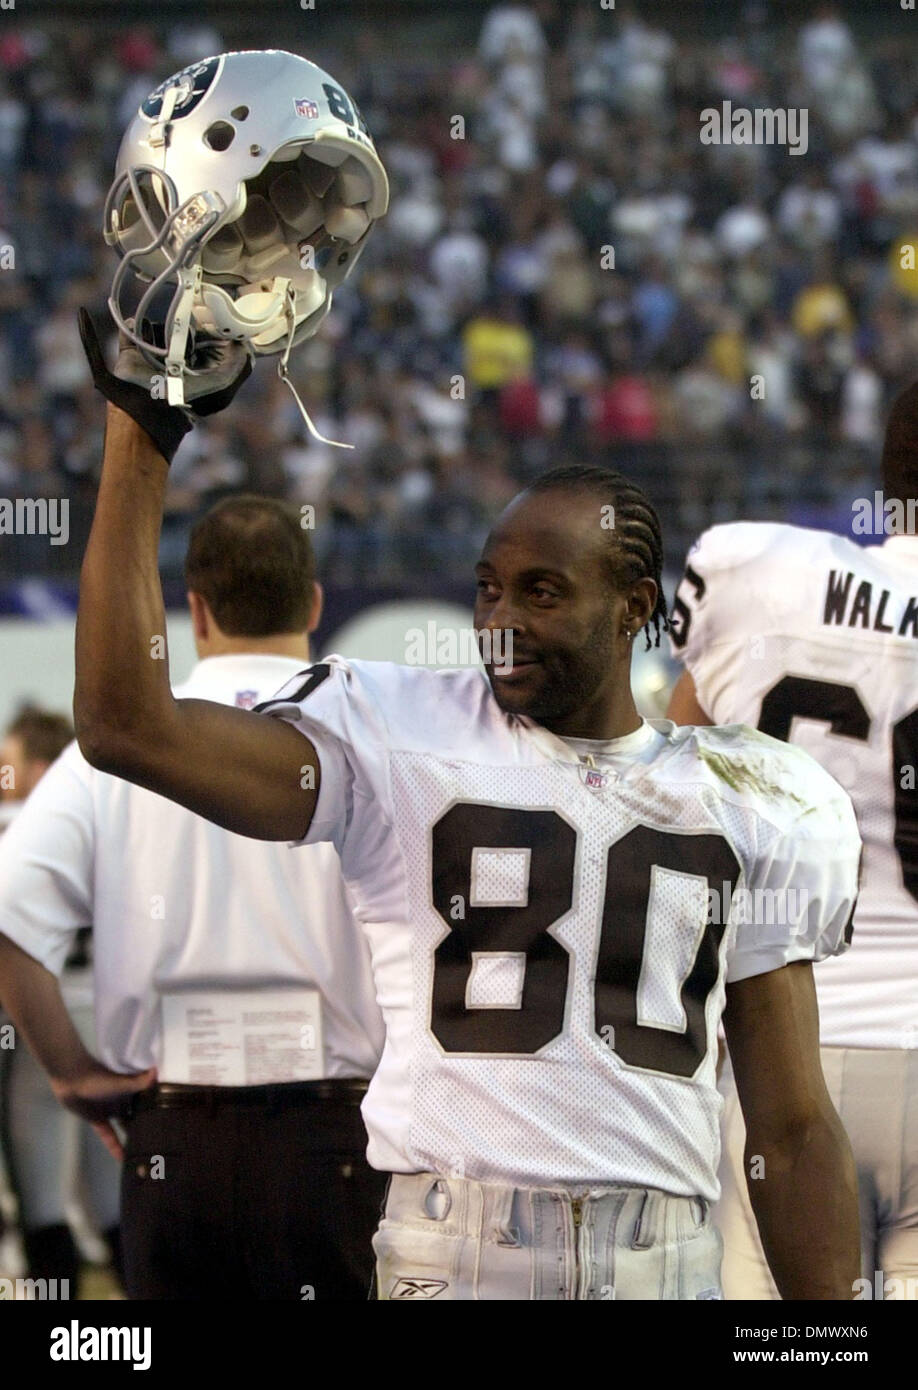 Dec 08, 2002; San Diego, CA, USA; Oakland Riaders' Jerry Rice, #80, acknowledges the crowd as the final minutes wind down in the 4th quarter of their game against the San Diego Chargers on Sunday, December 8, 2002 at Qualcomm Stadium in San Diego, Calif. Oakland beat San Diego 27-7. - Stock Image